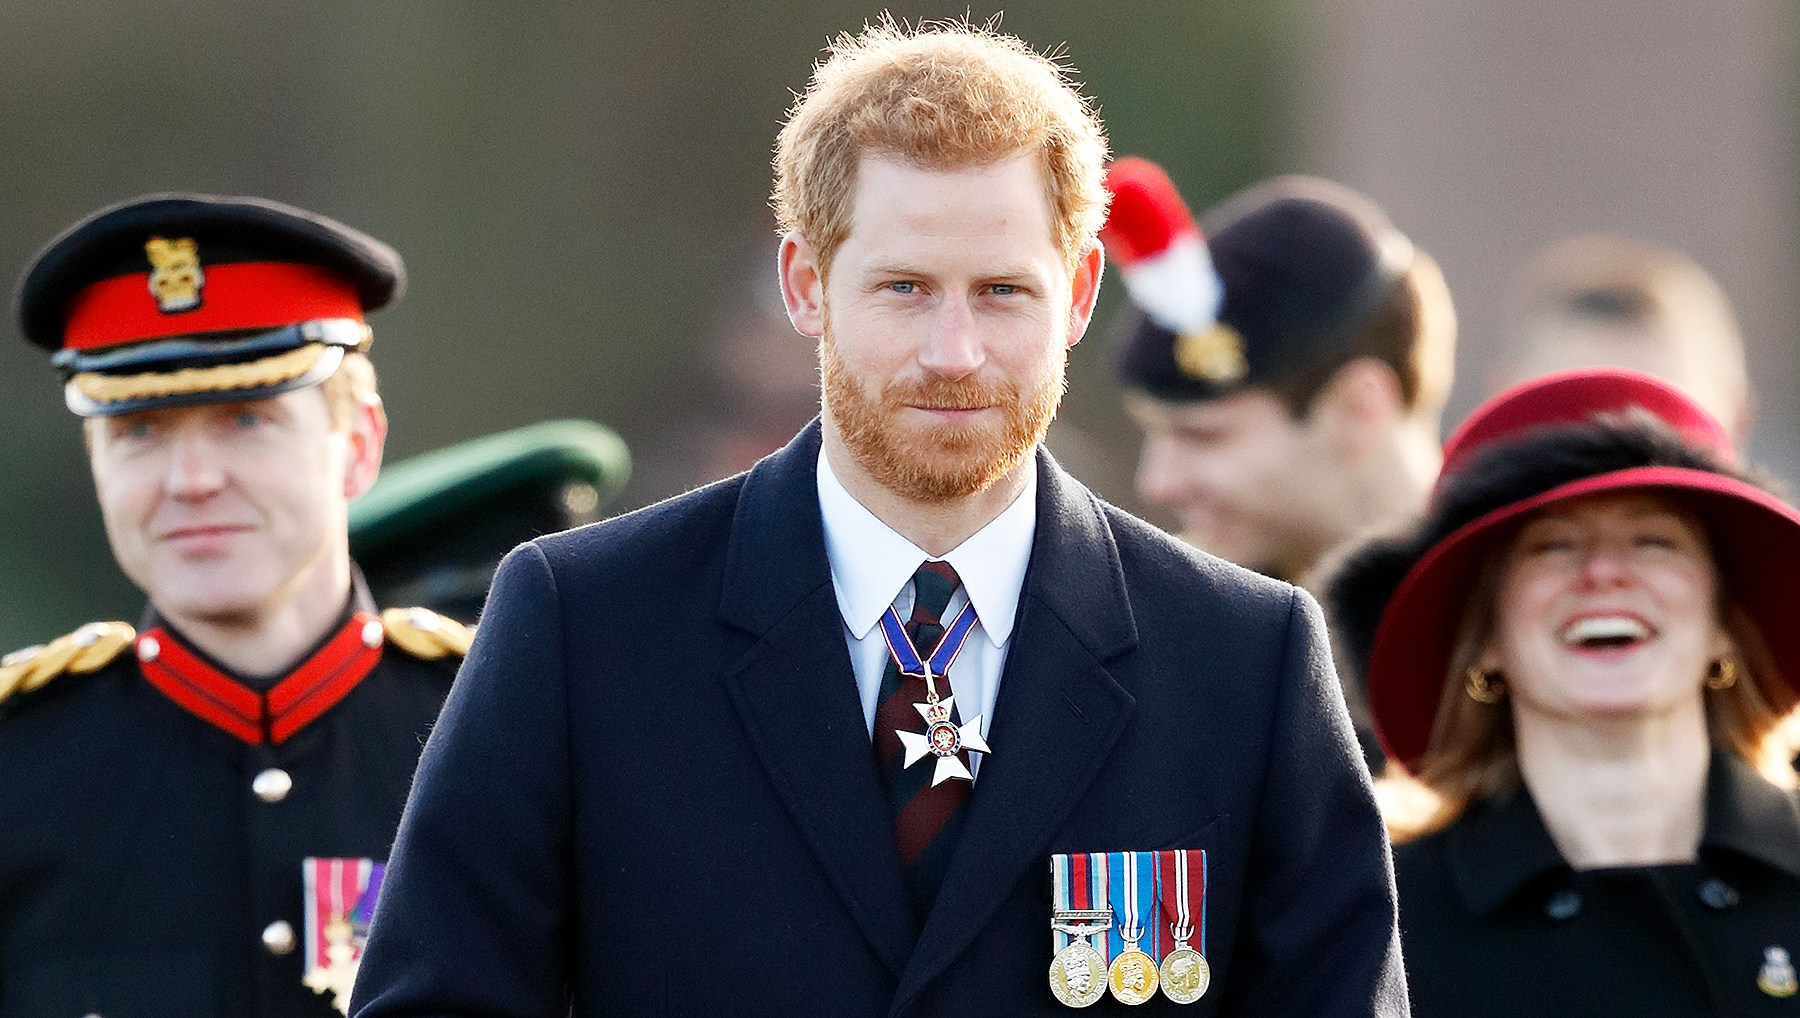 Prince Harry Gets Promotion